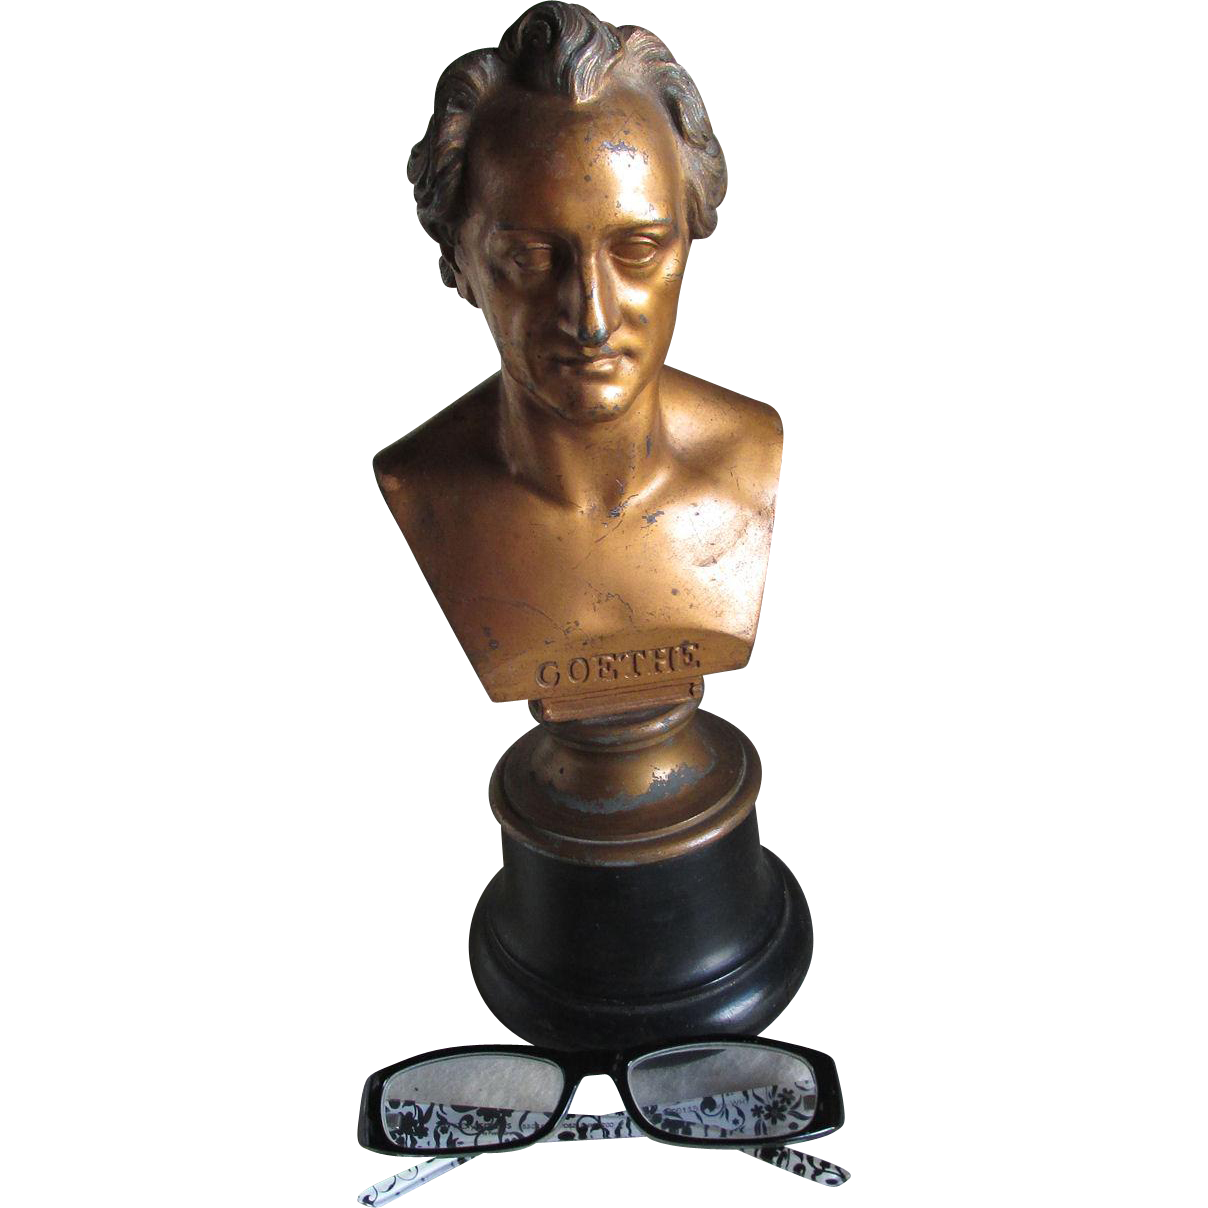 Antique Johann Wolfgang von Goethe Bust, Sculpture